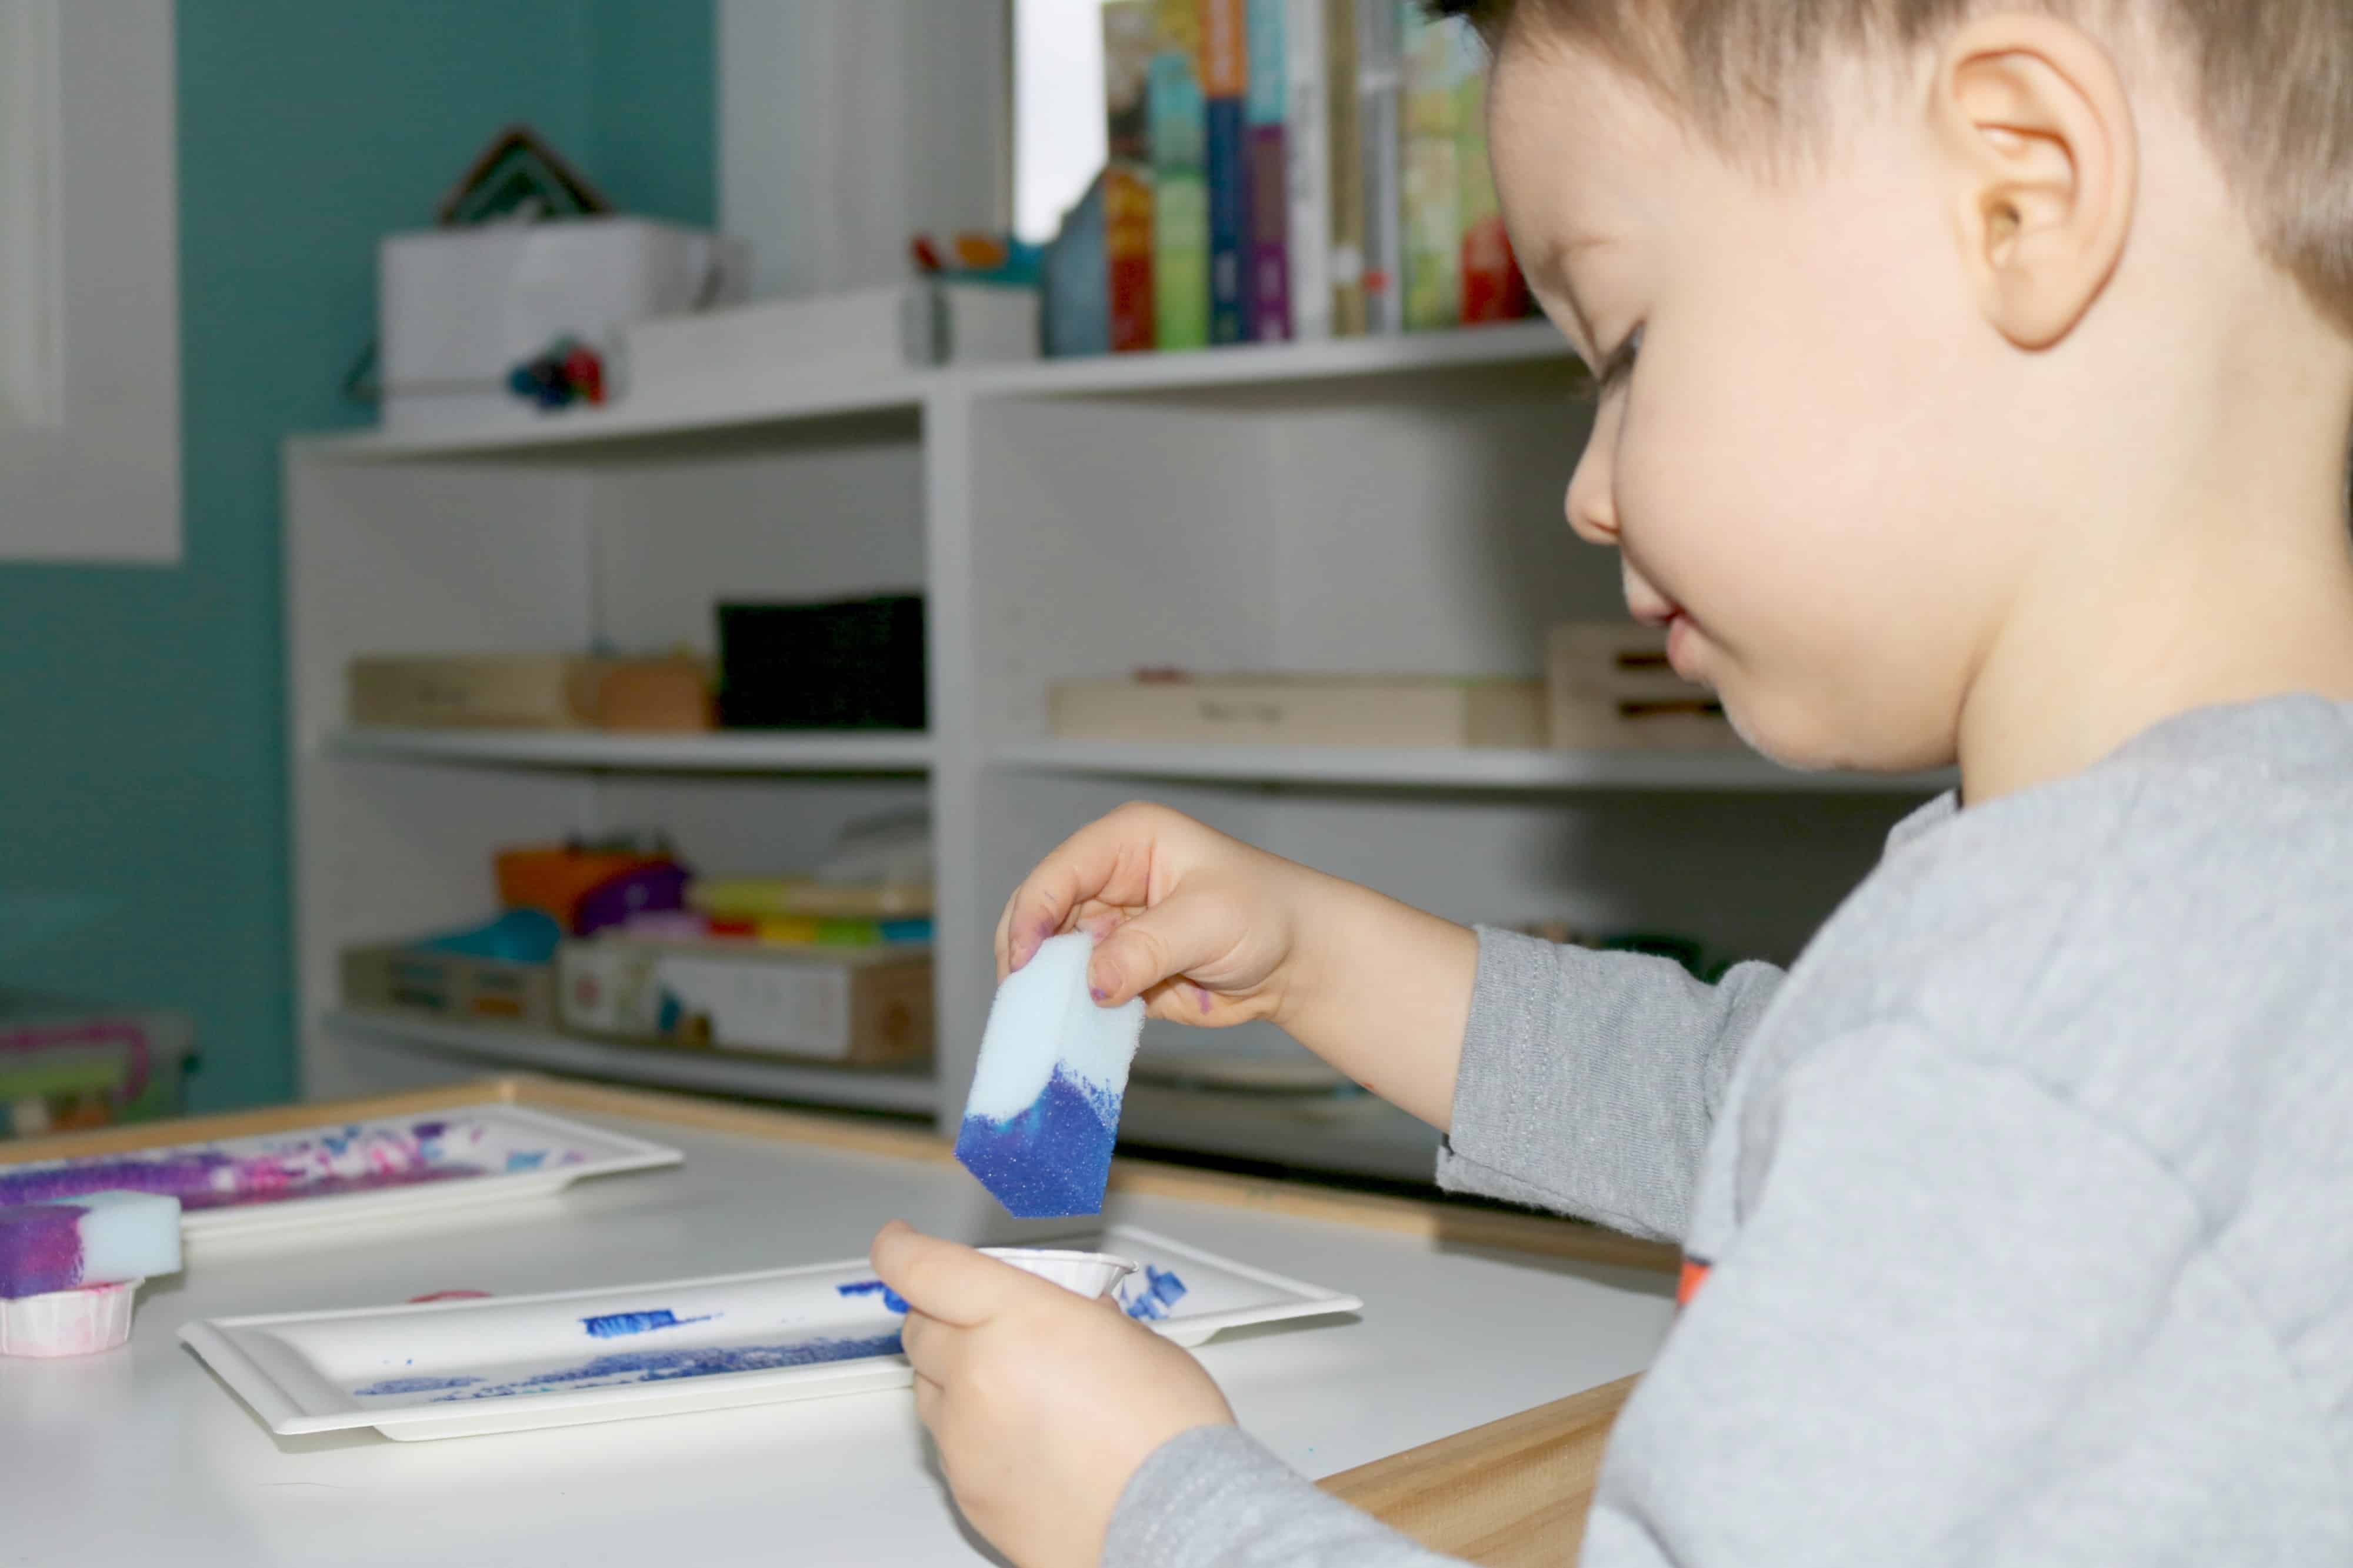 Why It's So Important to Give Little Kids Lots of Time + Space to be Creative